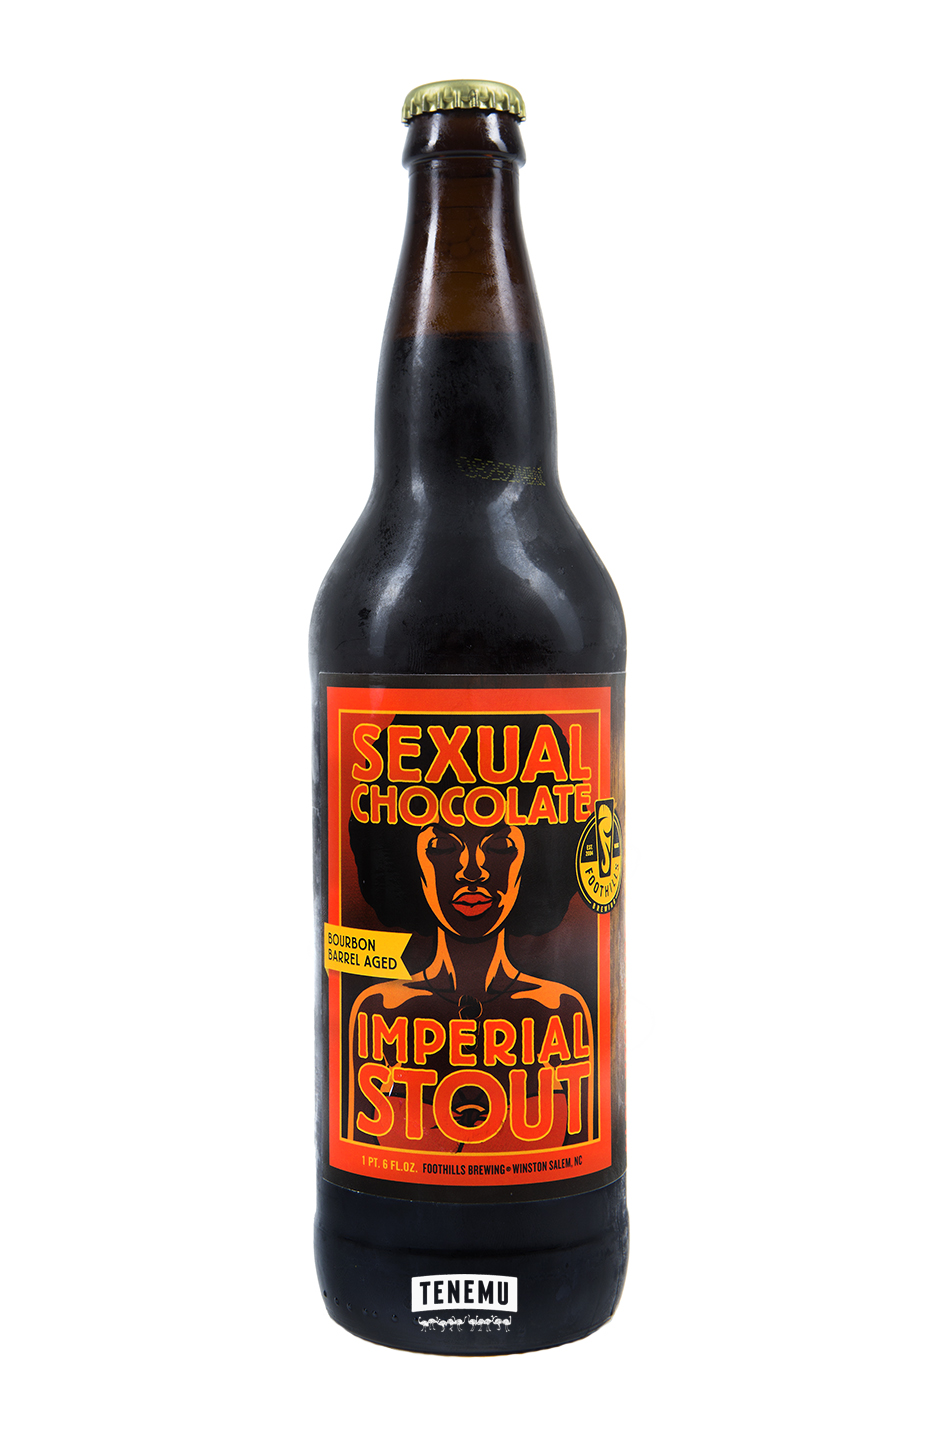 Foothills Bourbon Barrel Aged Sexual Chocolate 2014 Bottle